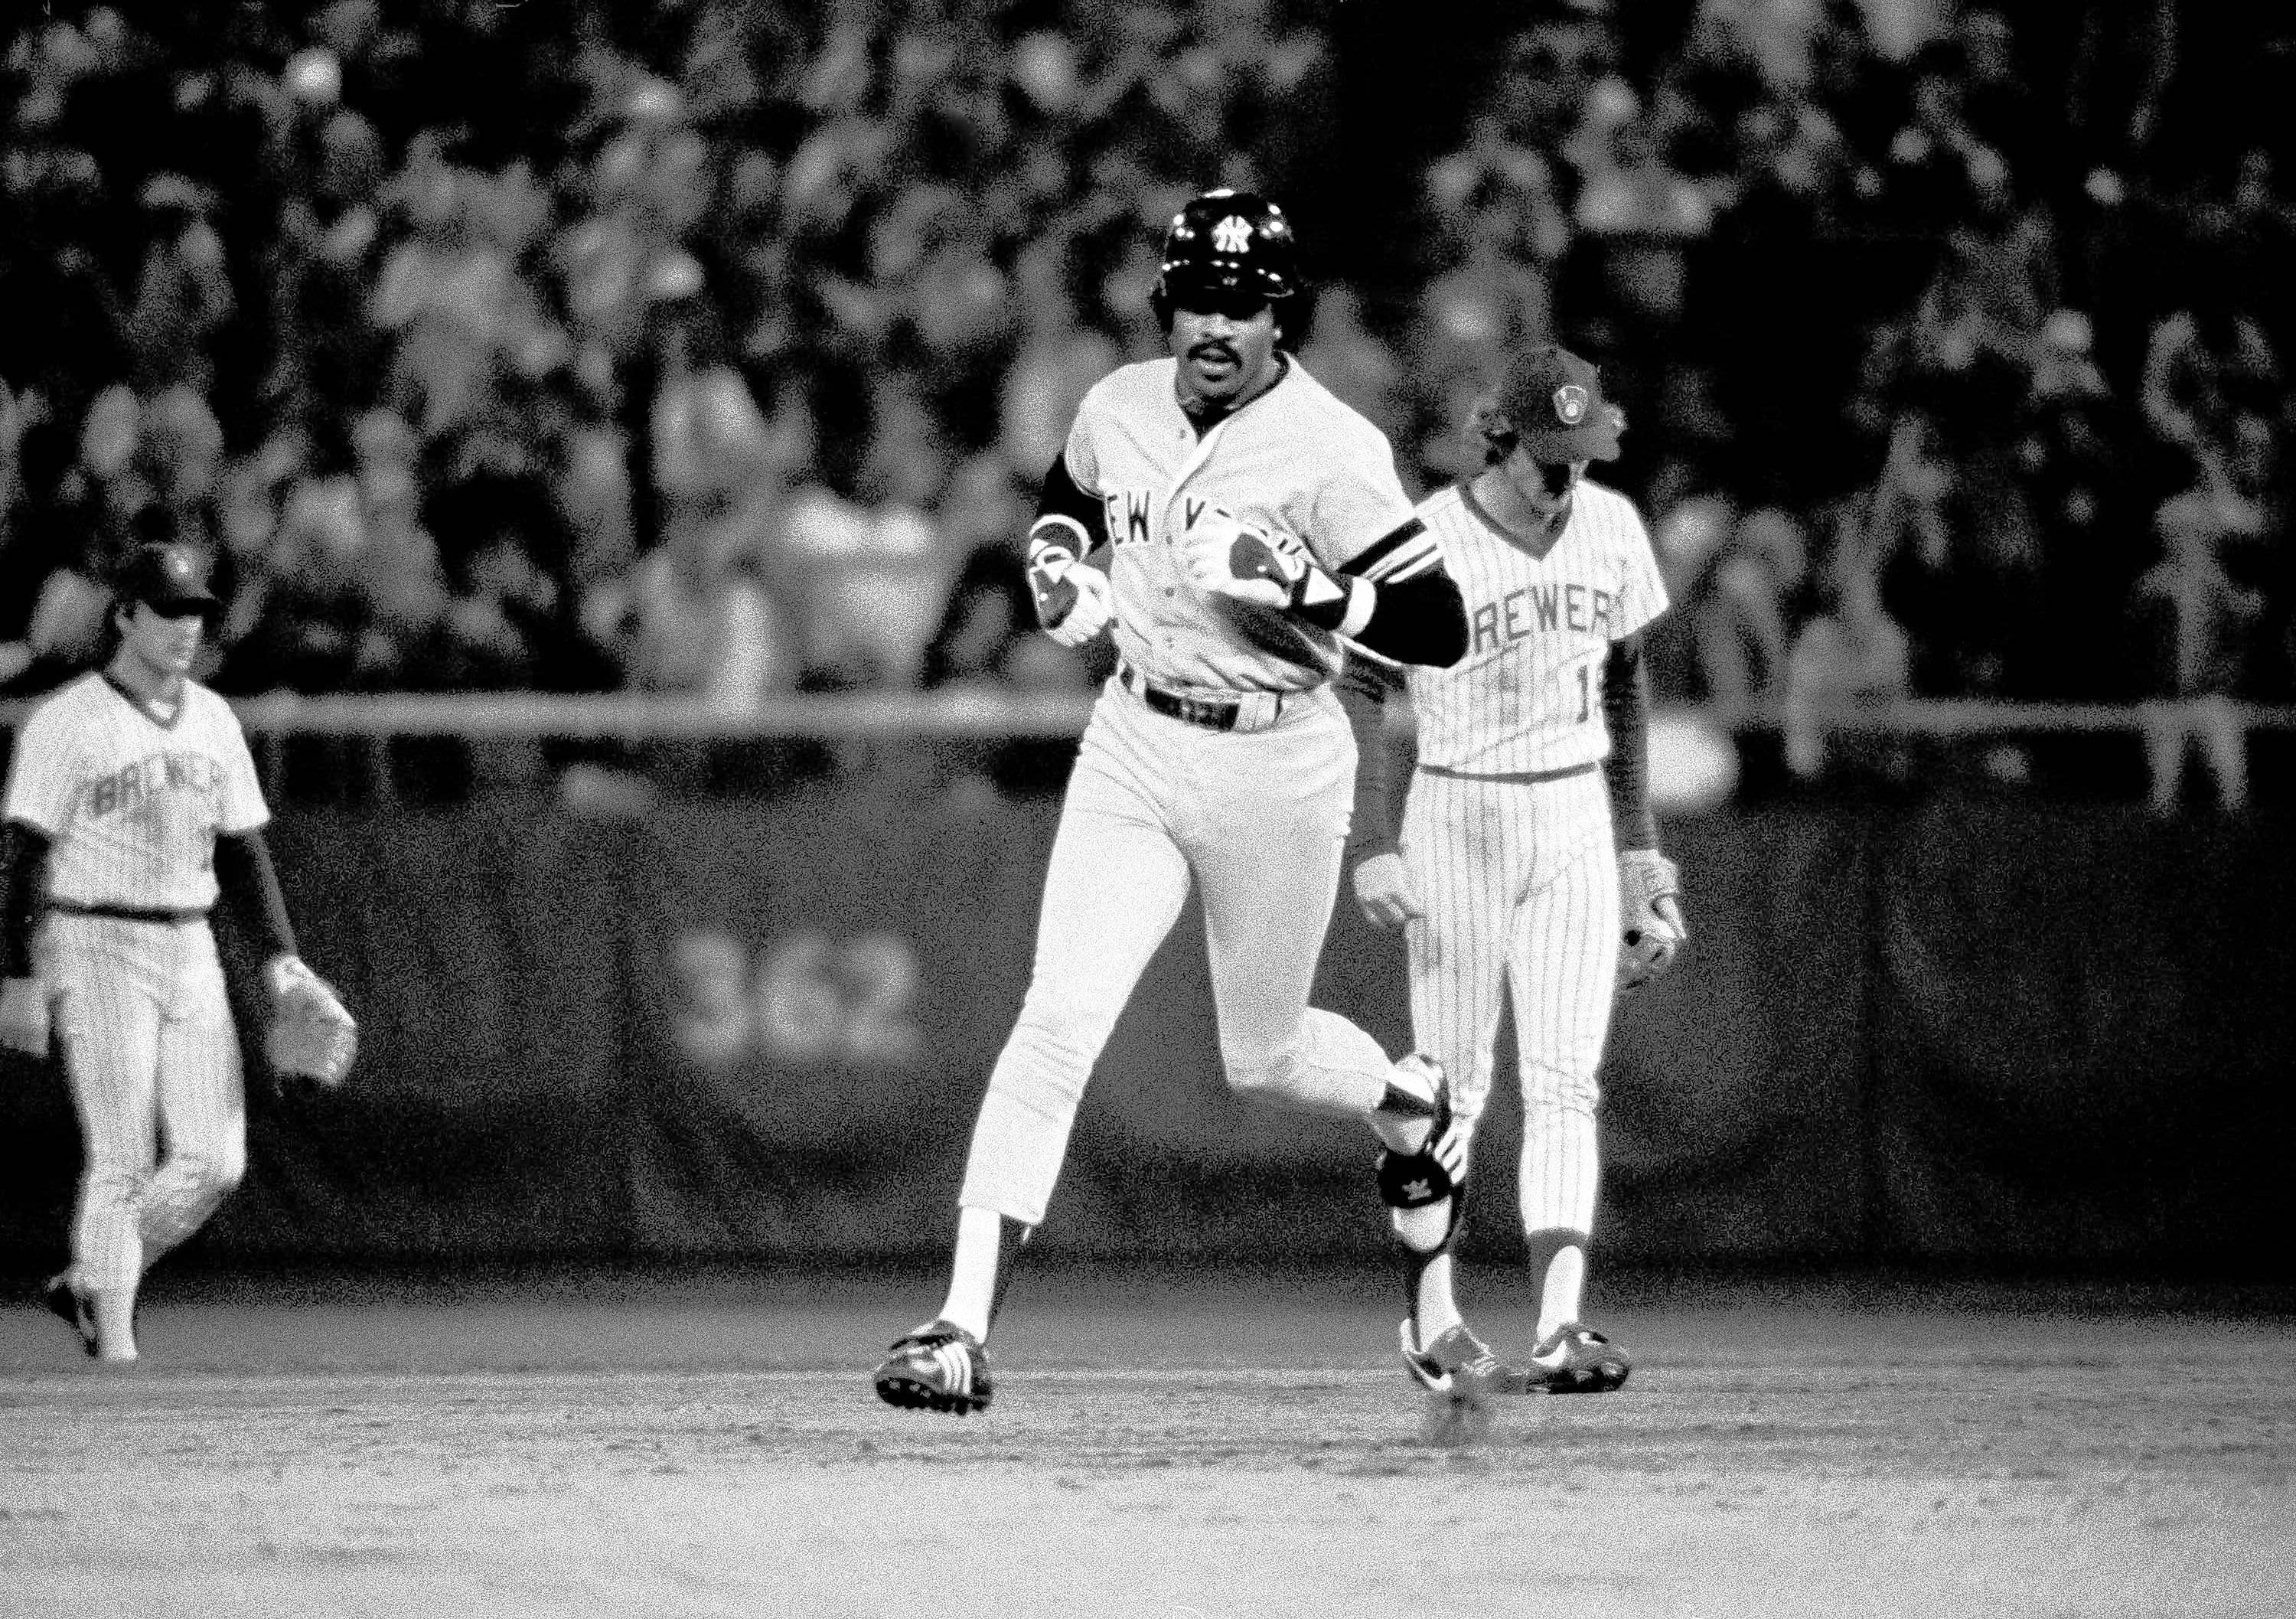 New York Yankee designated hitter Oscar Gamble rounds the bases past Milwaukee's Robin Yount after hitting a two-run homer in Milwaukee. Gamble, who hit 31 home runs for the White Sox in 1977, died Wednesday at age 68.